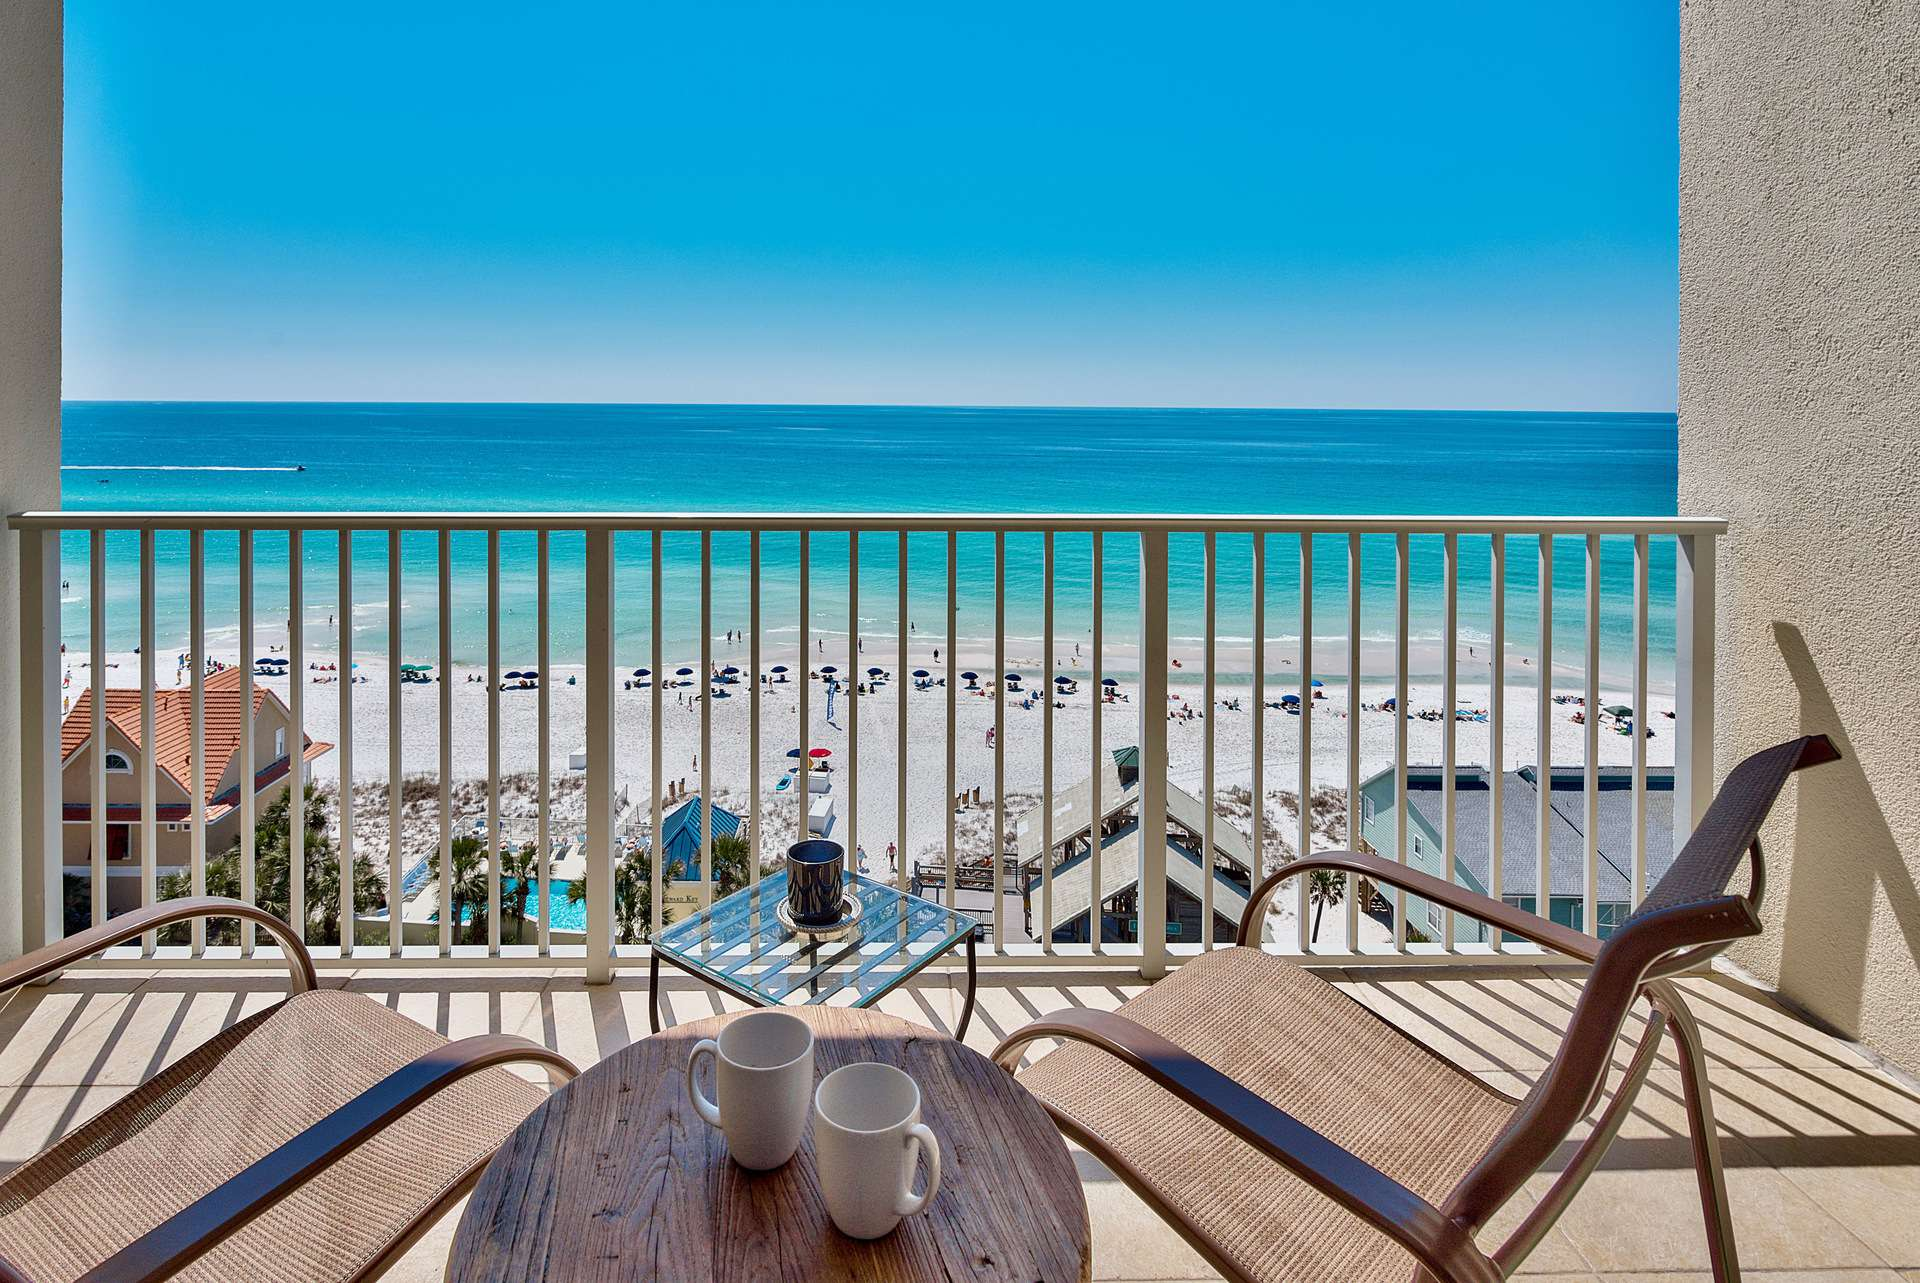 Destin Florida at Leeward Key Condos